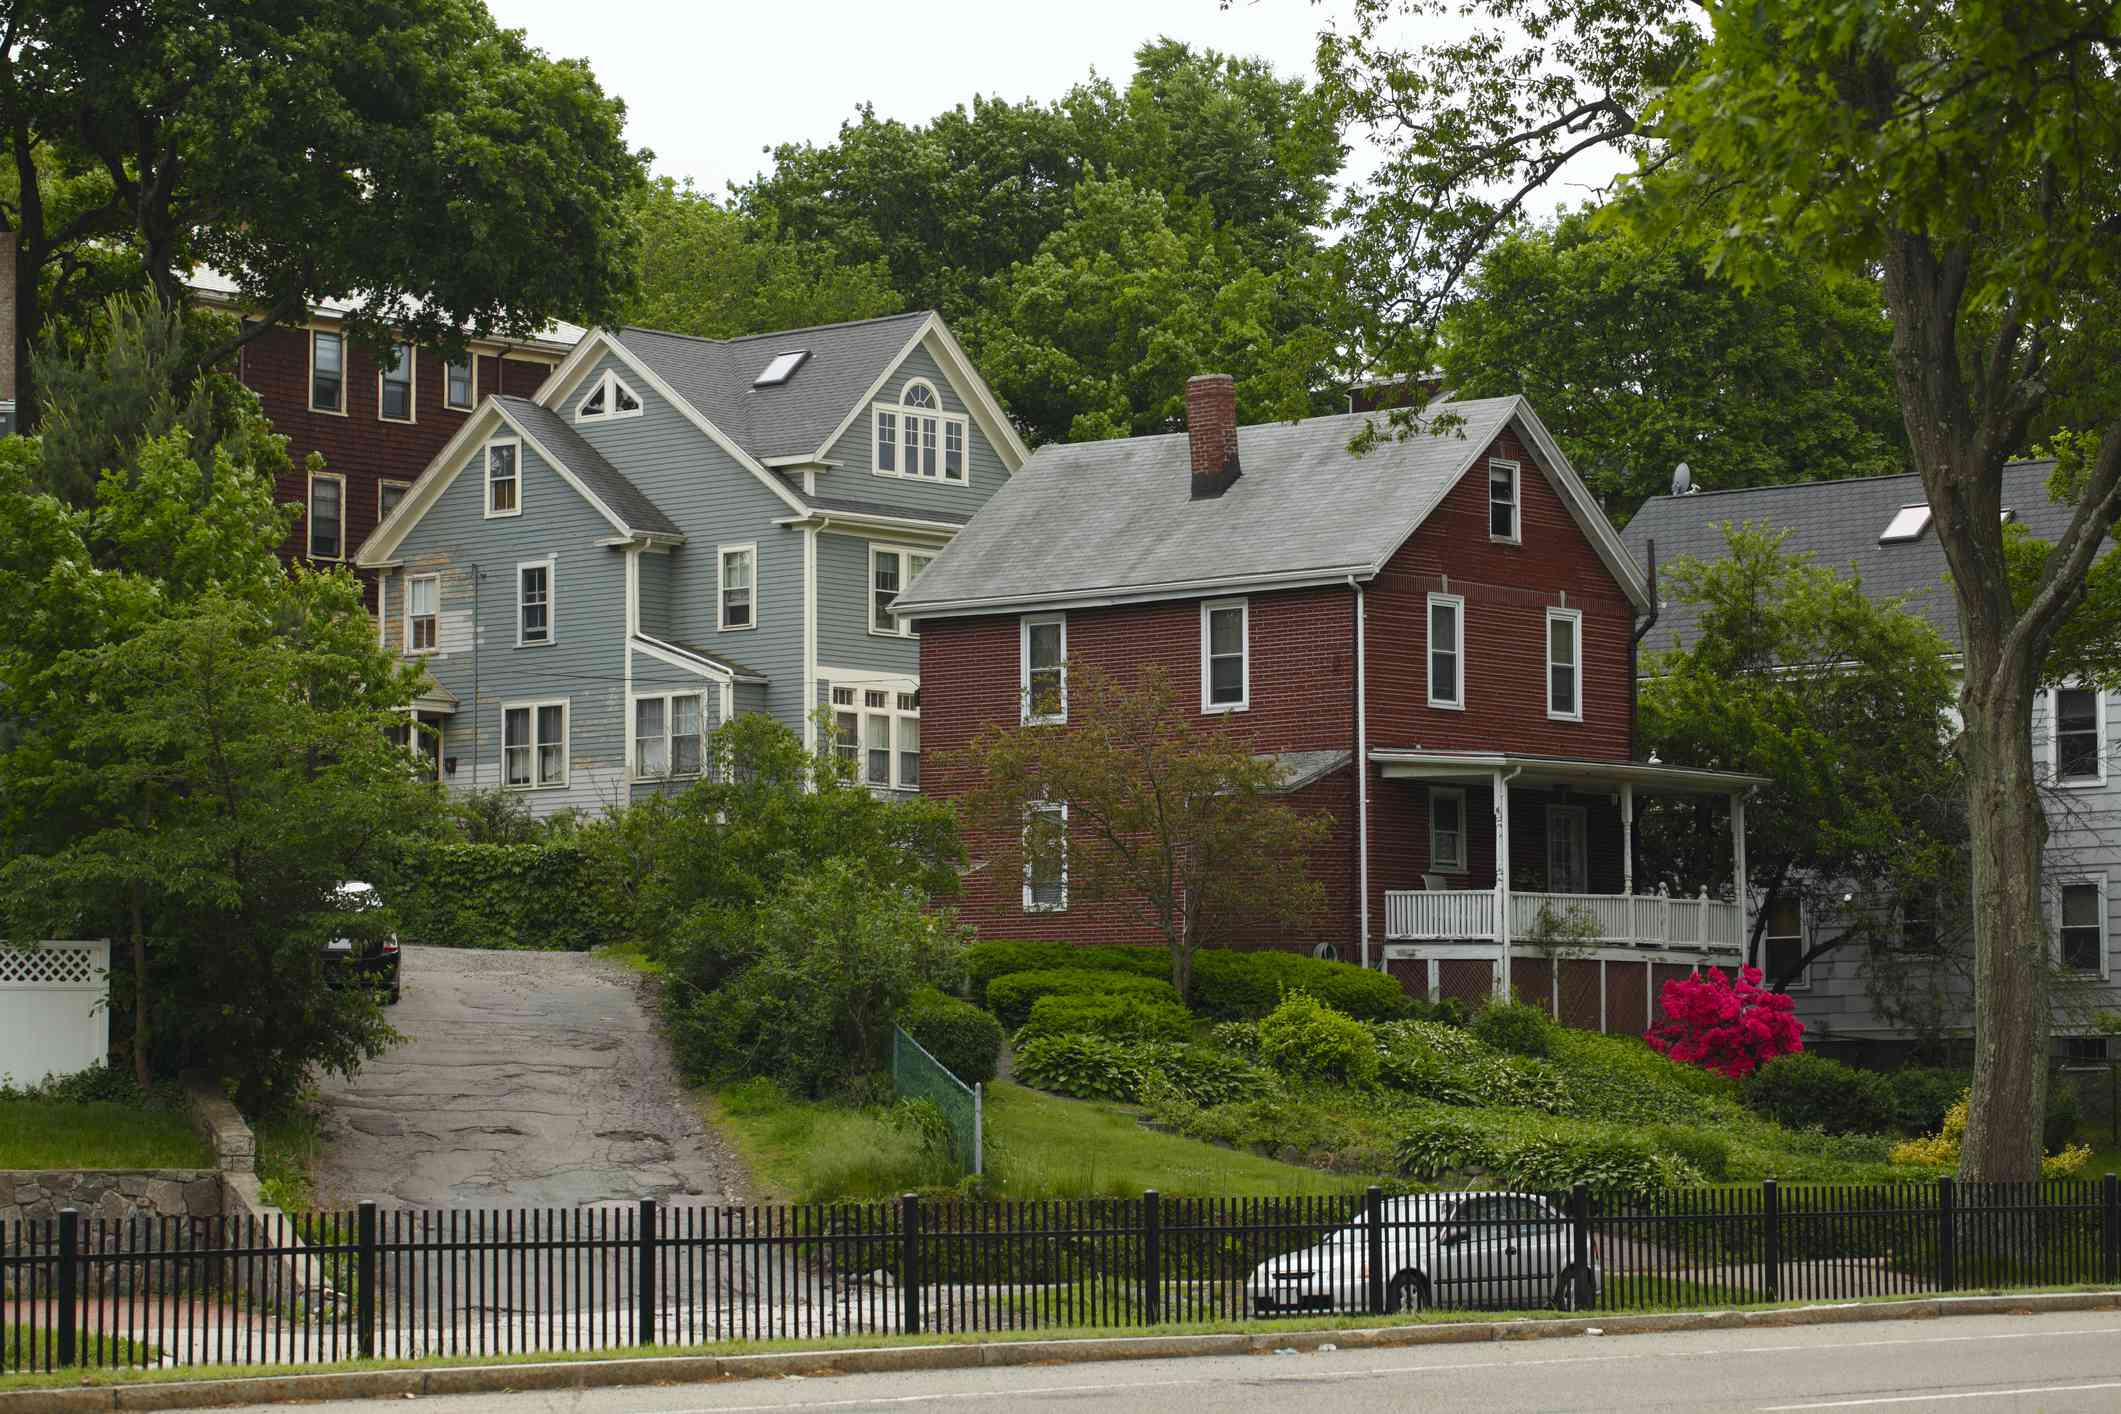 American Colonial-style homes